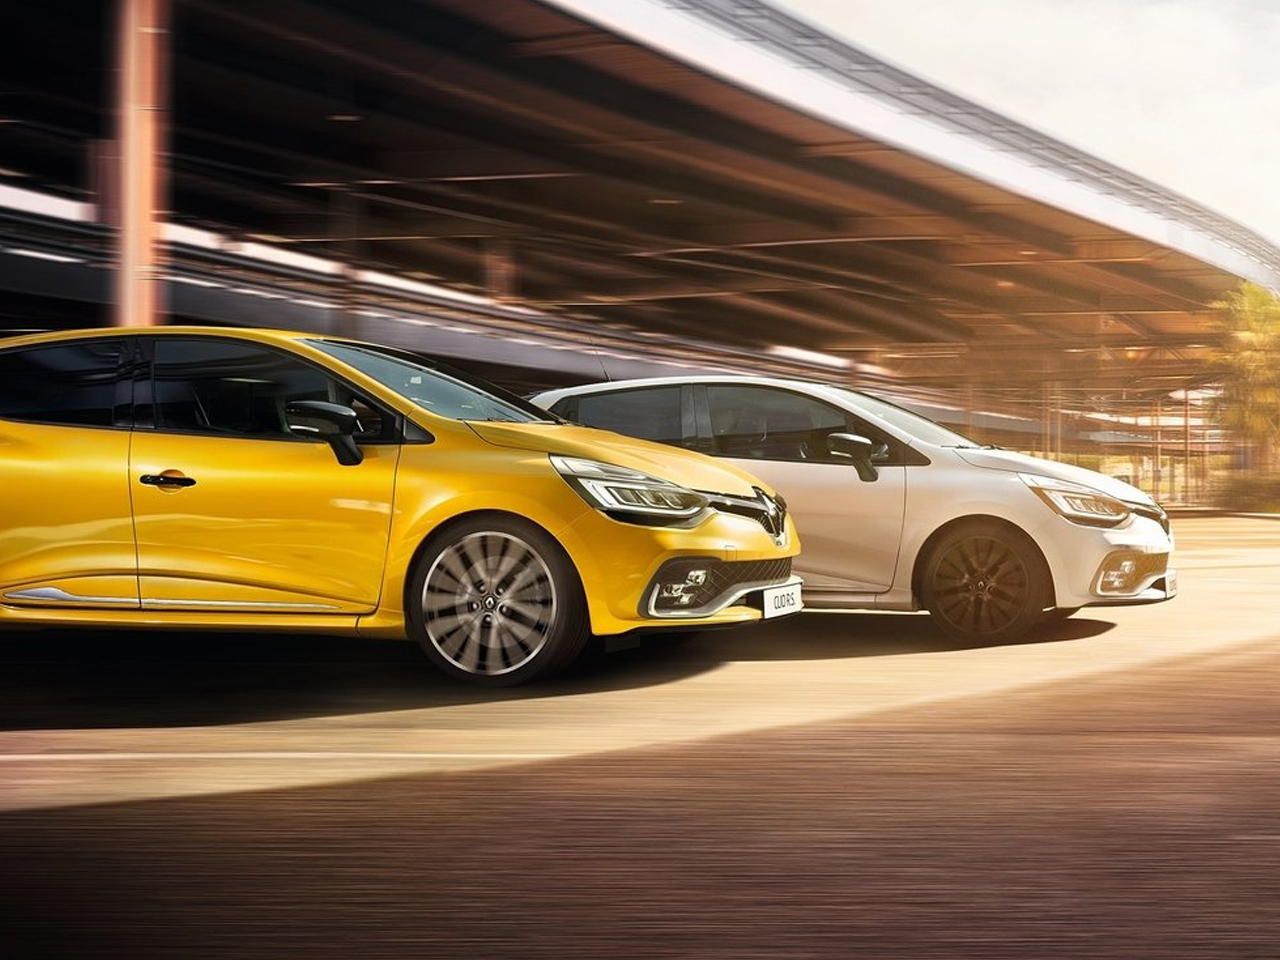 Lateral Renault Clio RS